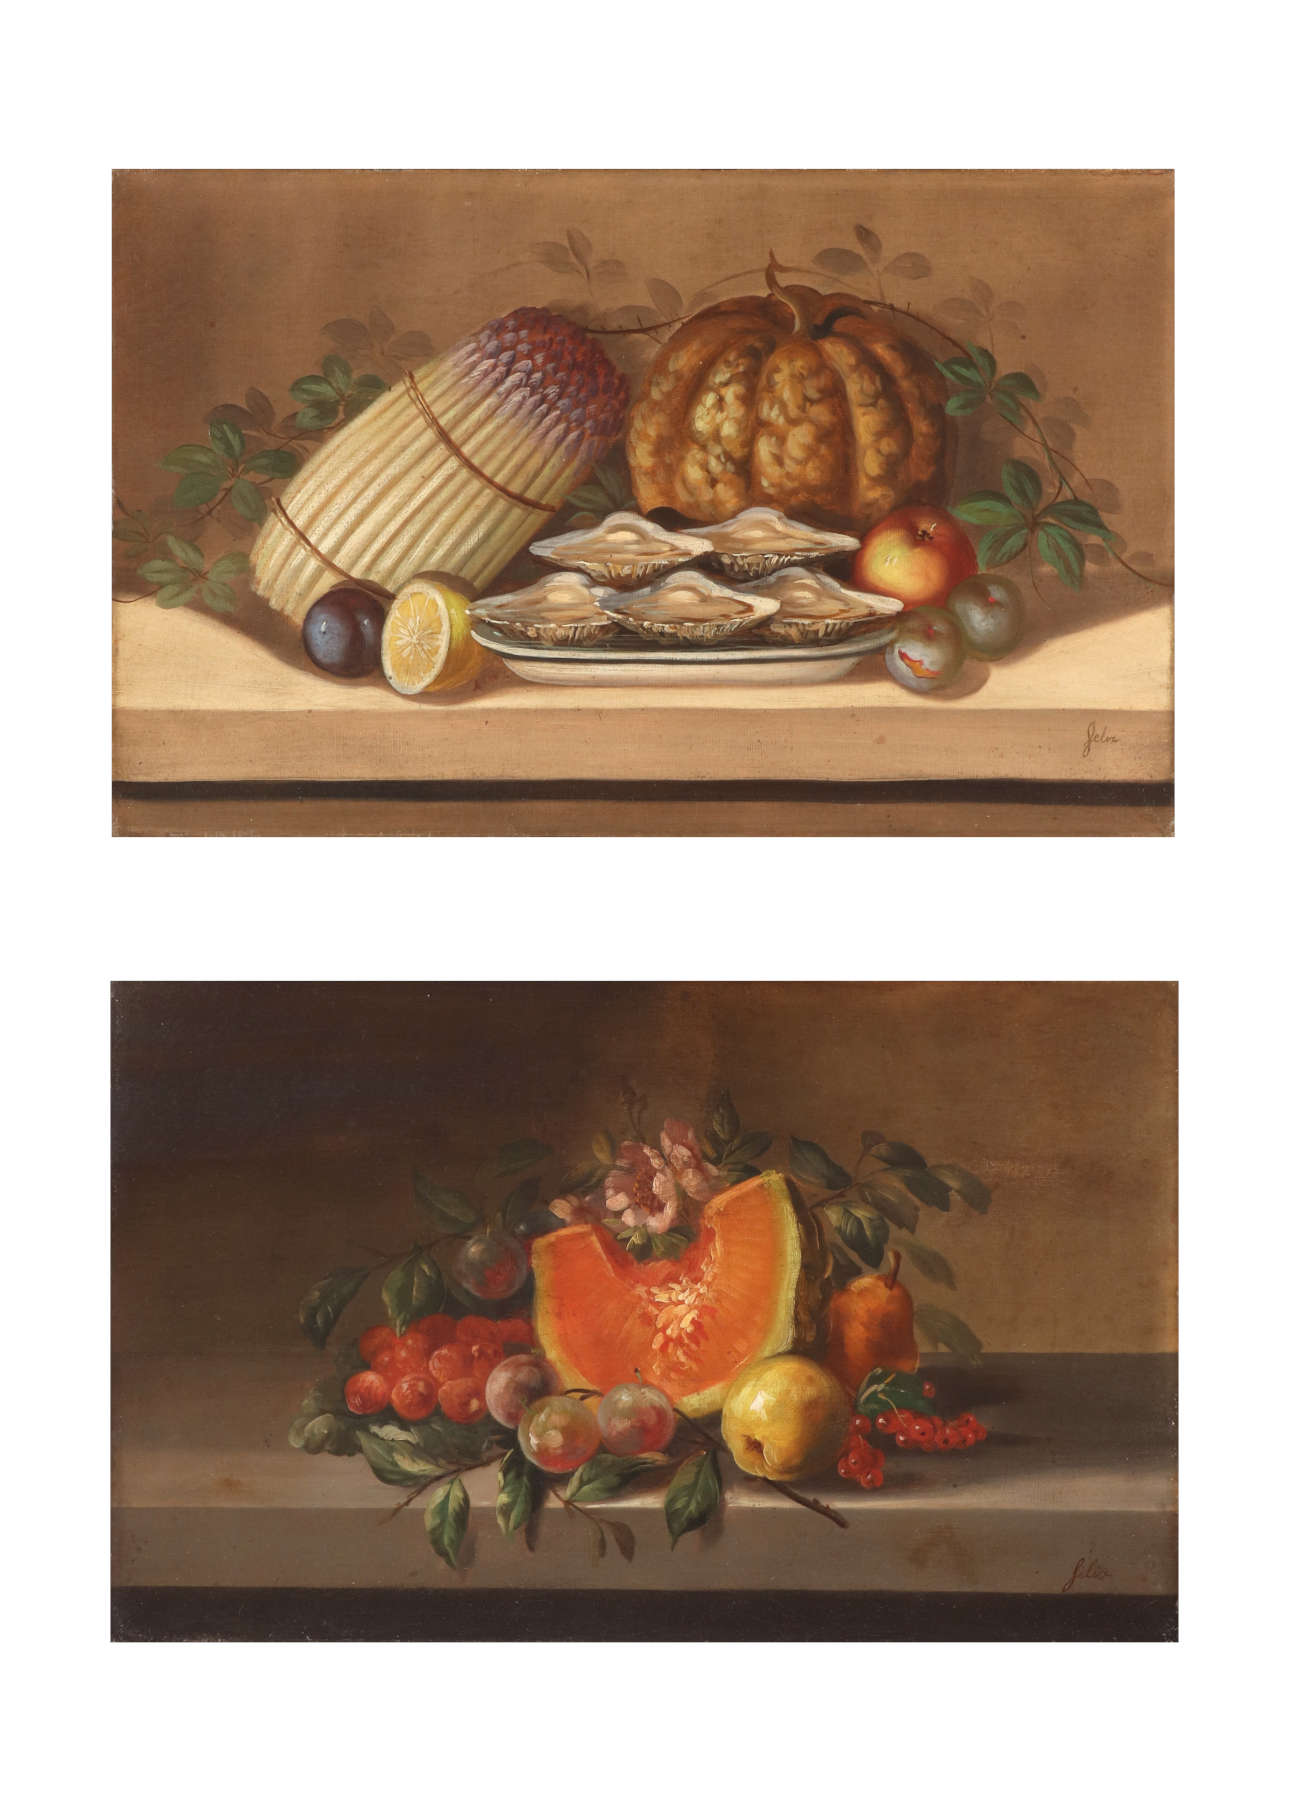 Juliette Felix (1869- ?) French, Pair of Still Lifes